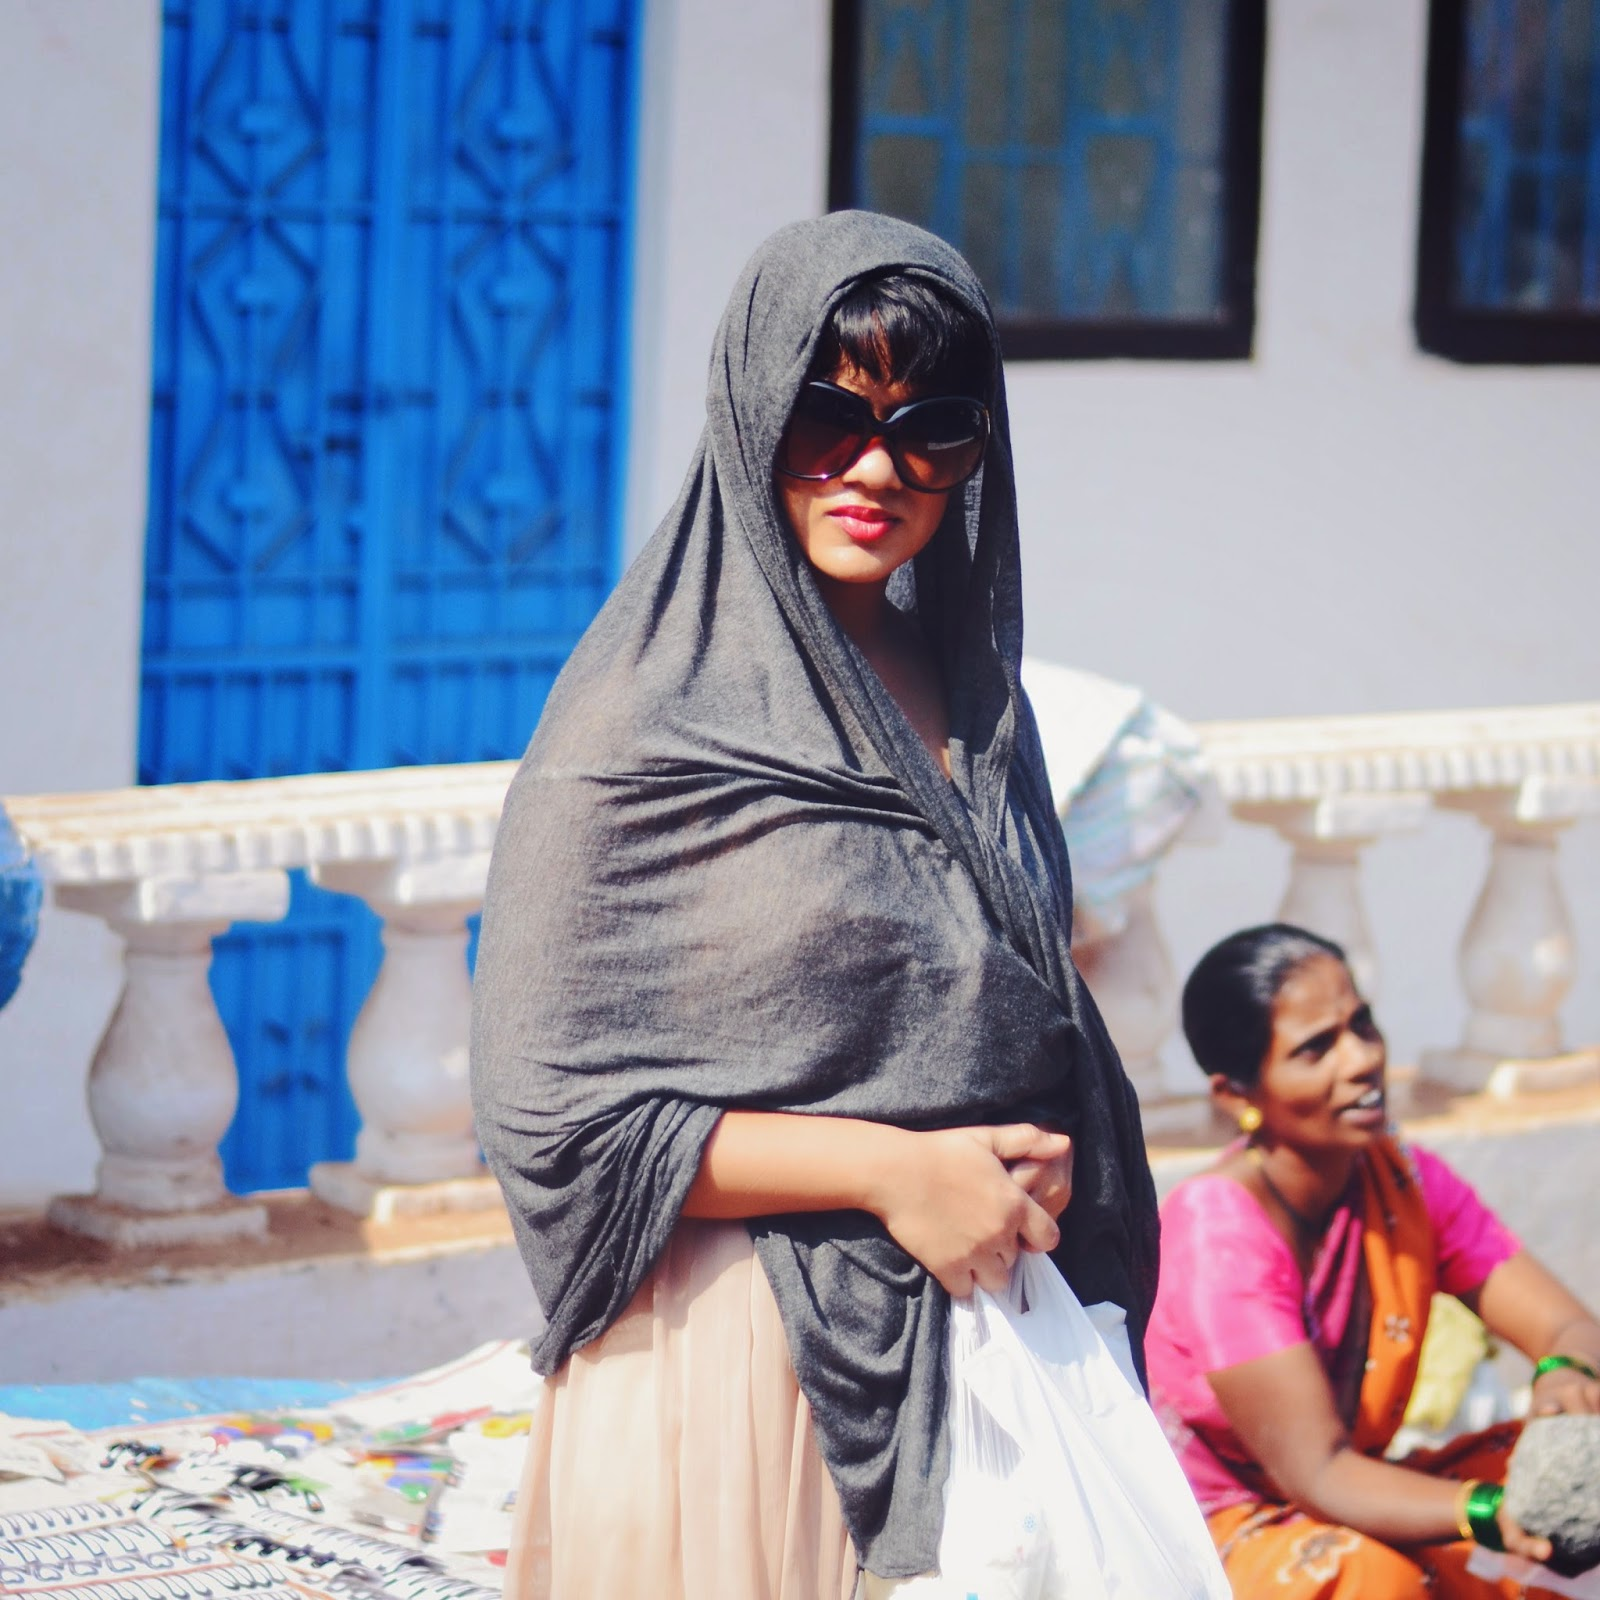 sunglasses, red lips, head scarf, scarf, goa, shopping, errands, homeland, carrie, outfit, lookbook,